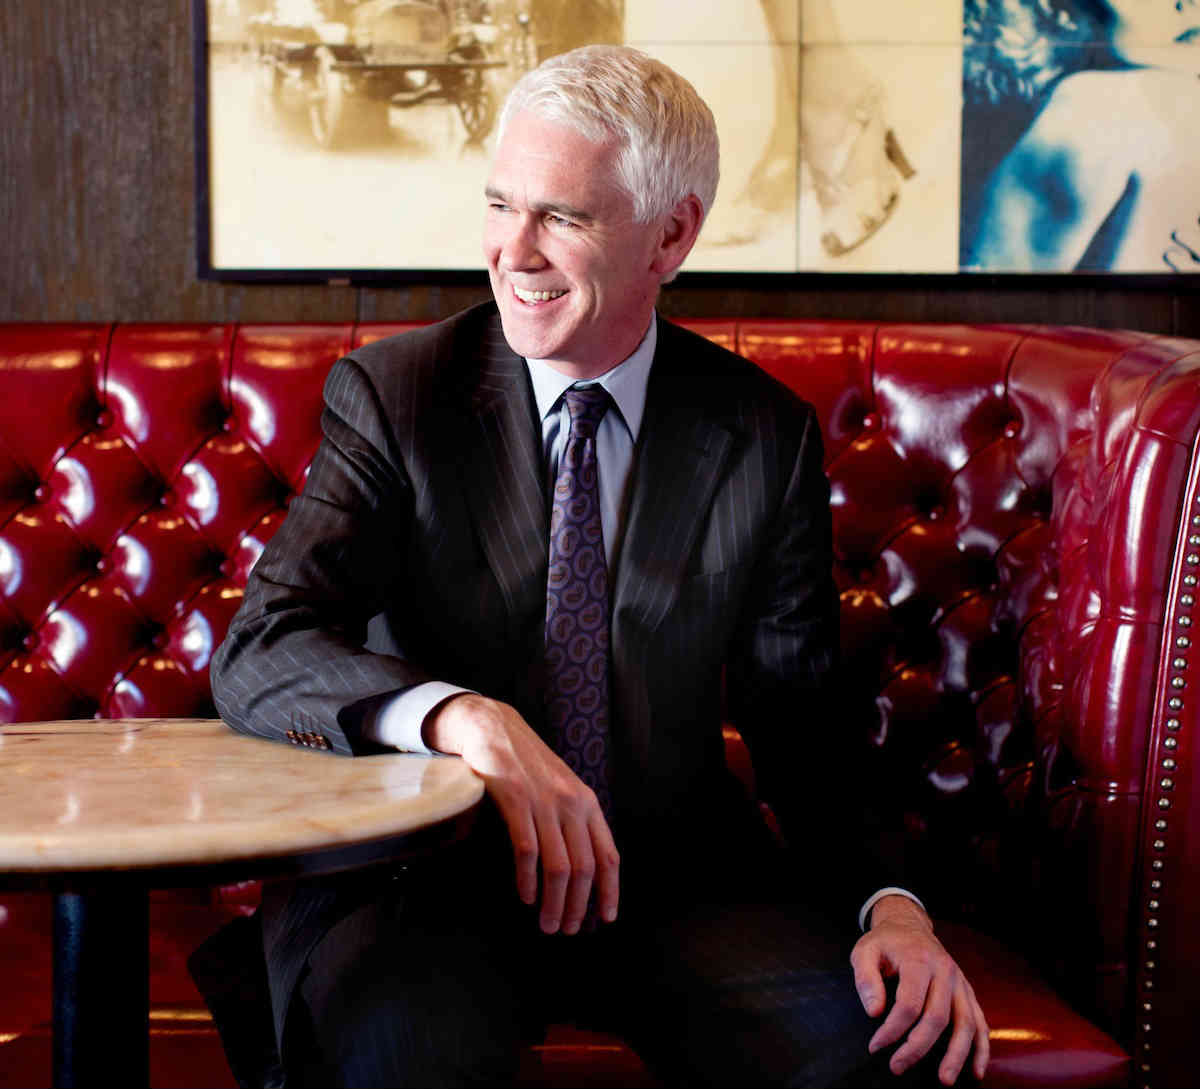 Garrett Harker, Boston Restaurateur